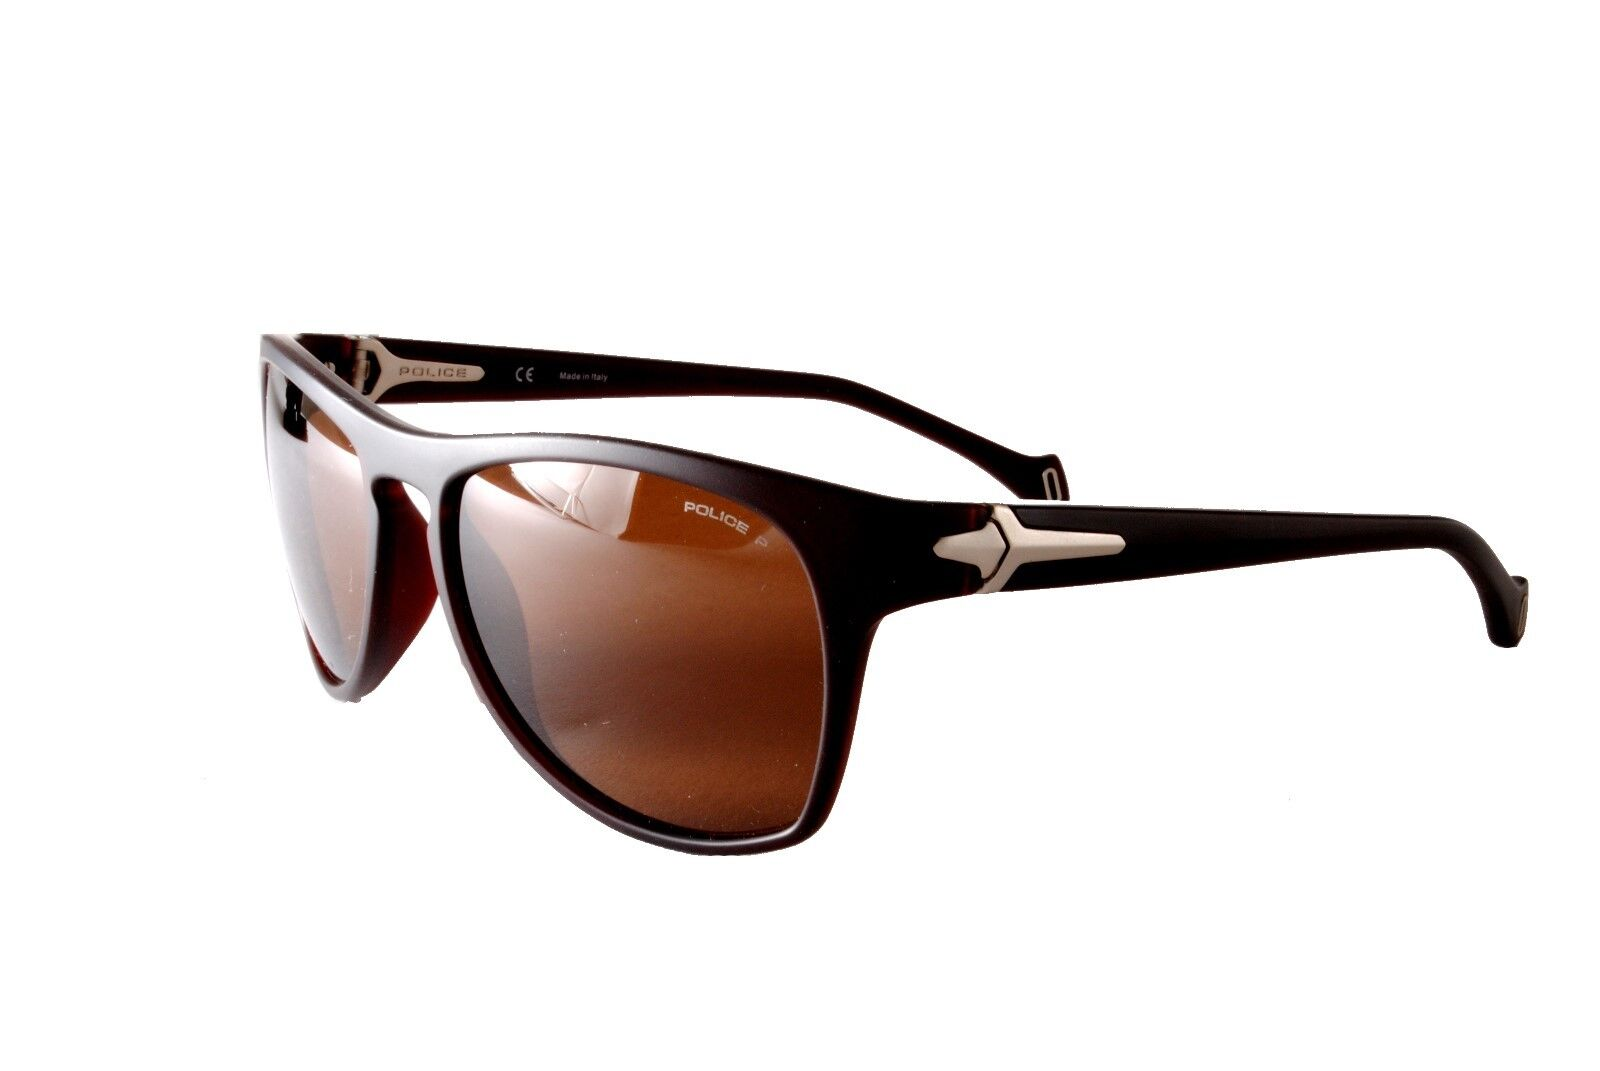 7d98587b18b Police Polarised Sunglasses S1887M Gulfport Z55P Matt Brown Brown